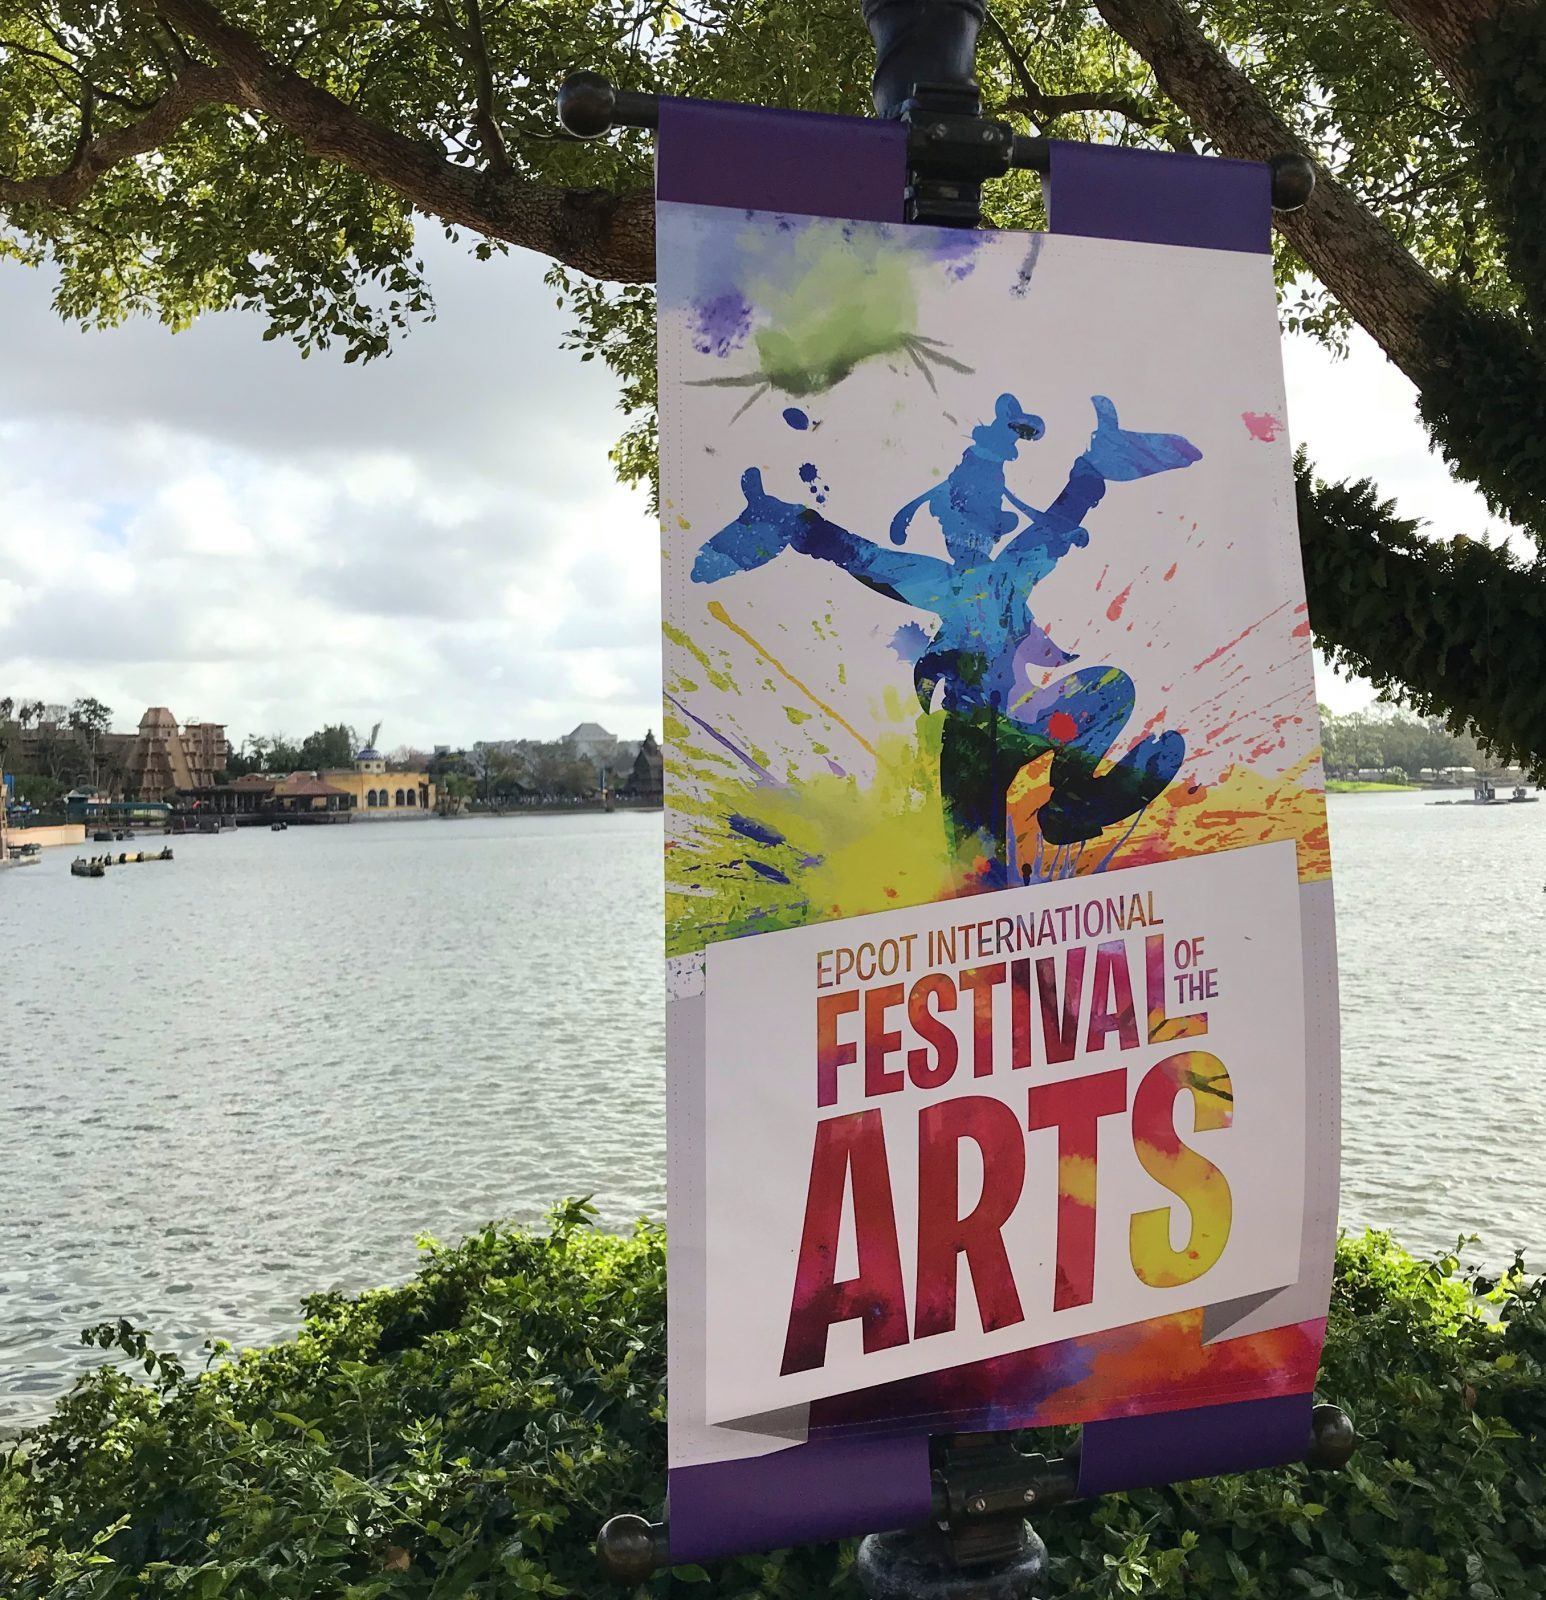 Festival of the Arts sign at Epcot